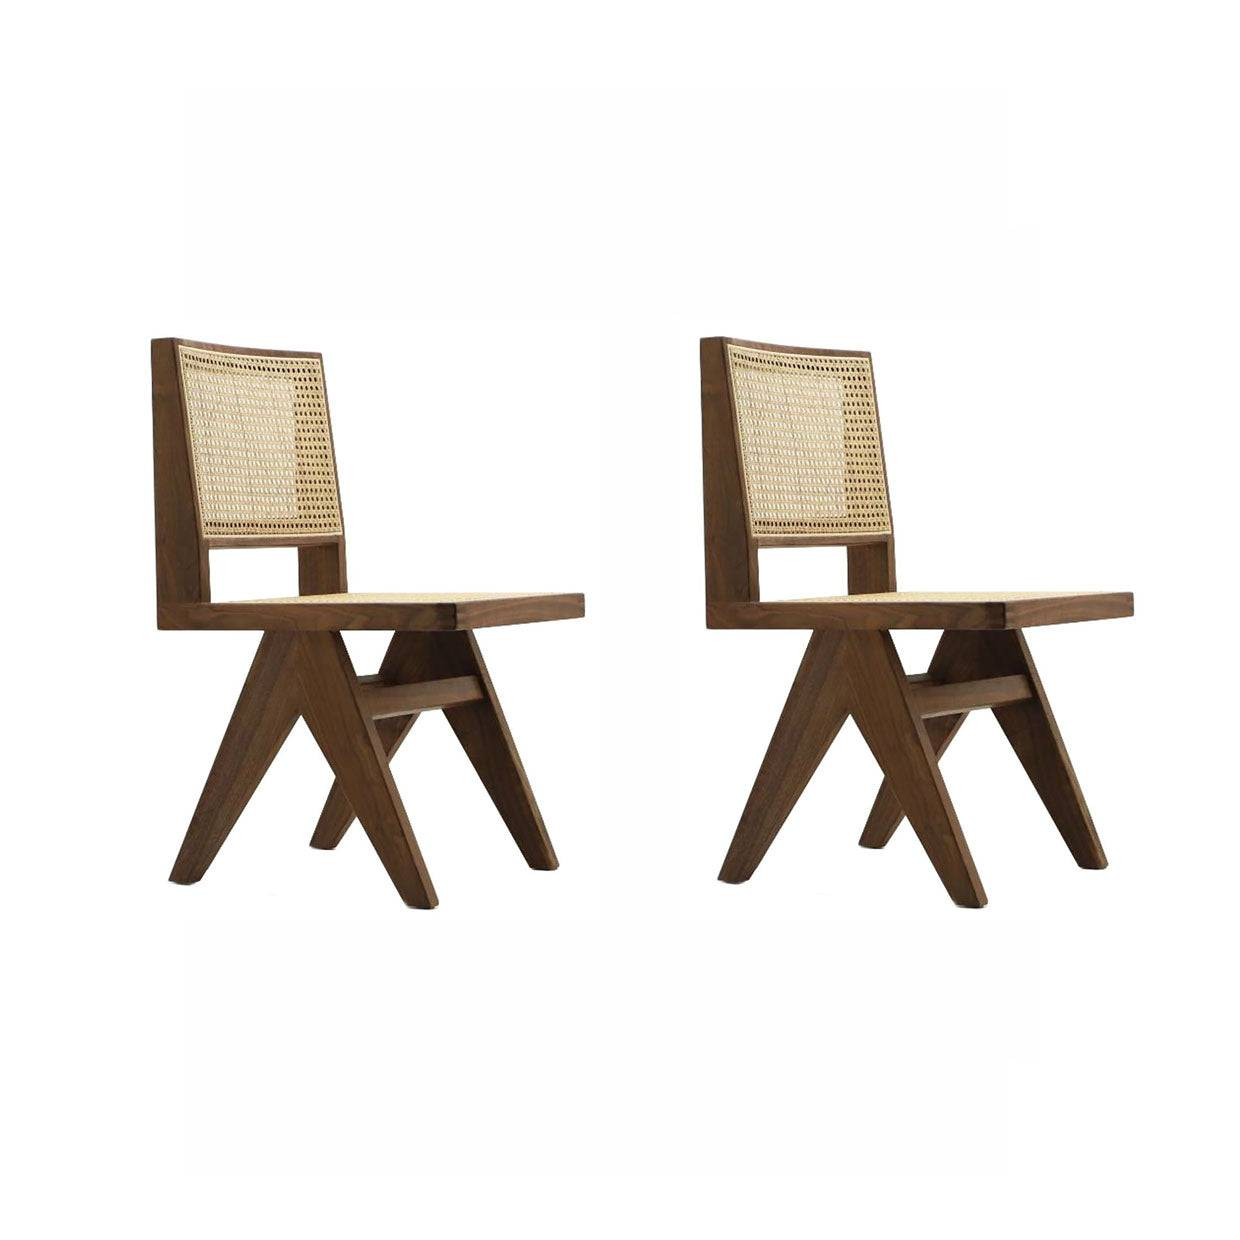 1 Set of Two Pierre Jeanneret Dining Chair - Oiled Walnut